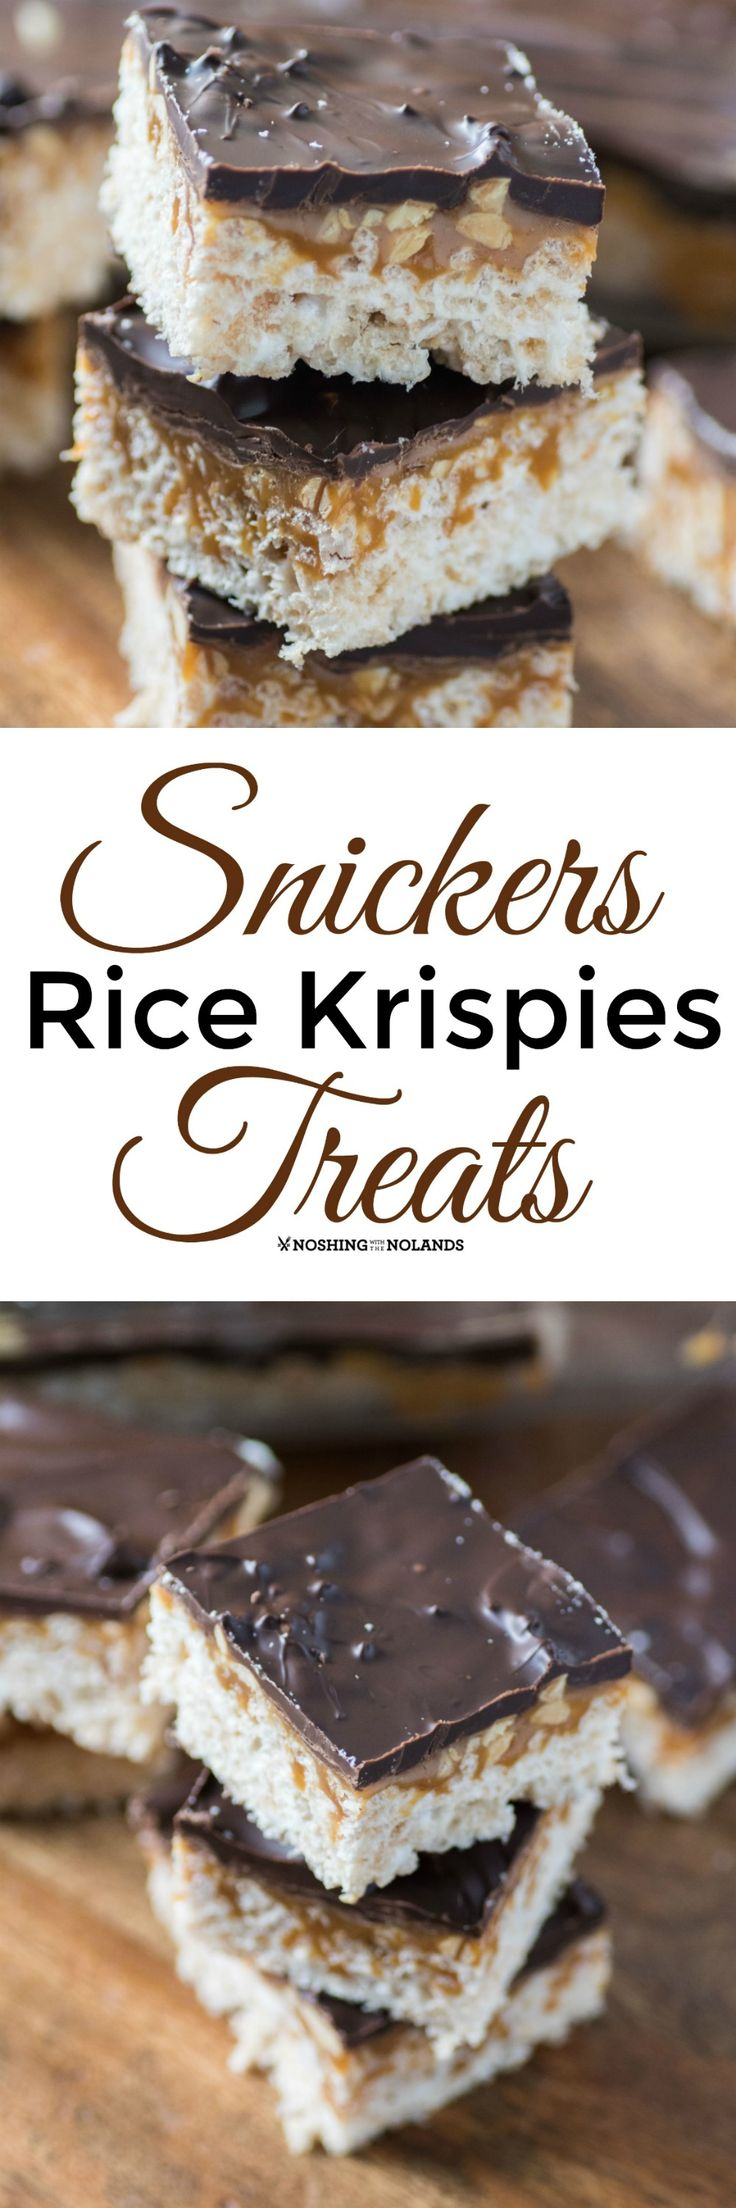 Snickers Rice Krispies Treats by Noshing With The Nolands combines two delicious treats into one fabulous dessert! You are going to want to make these right away!